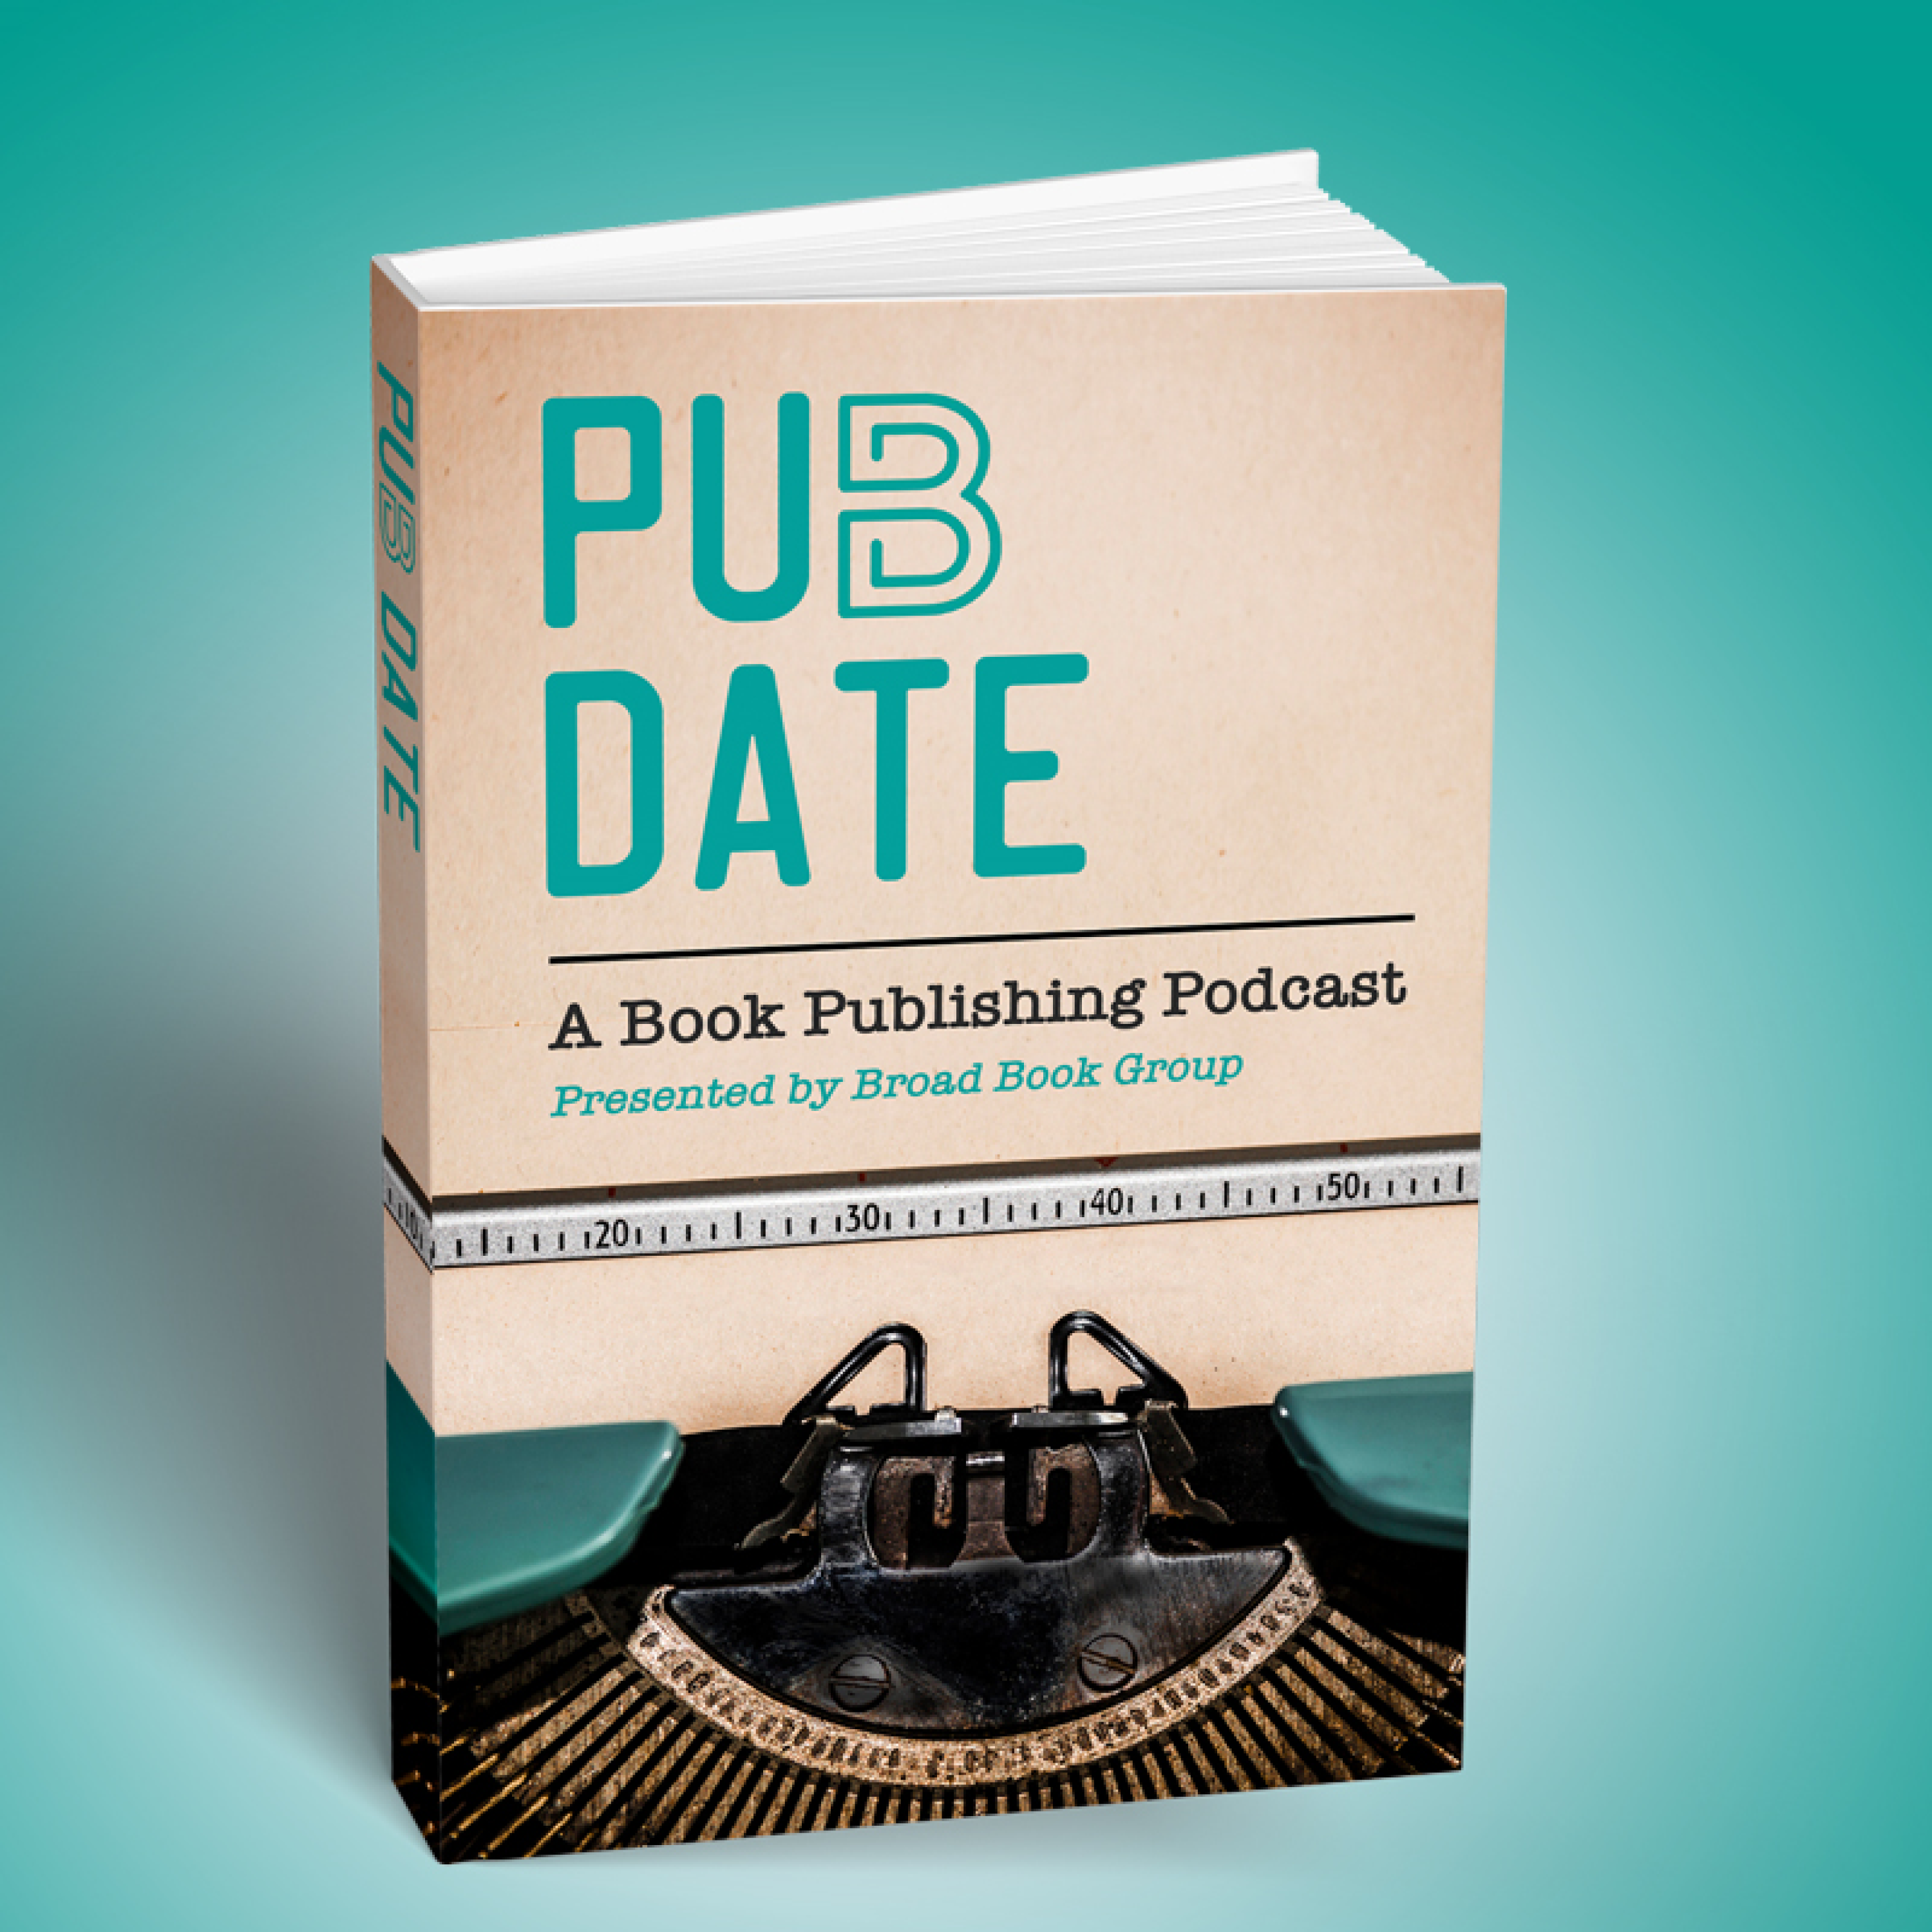 Listen to the Pub Date Podcast